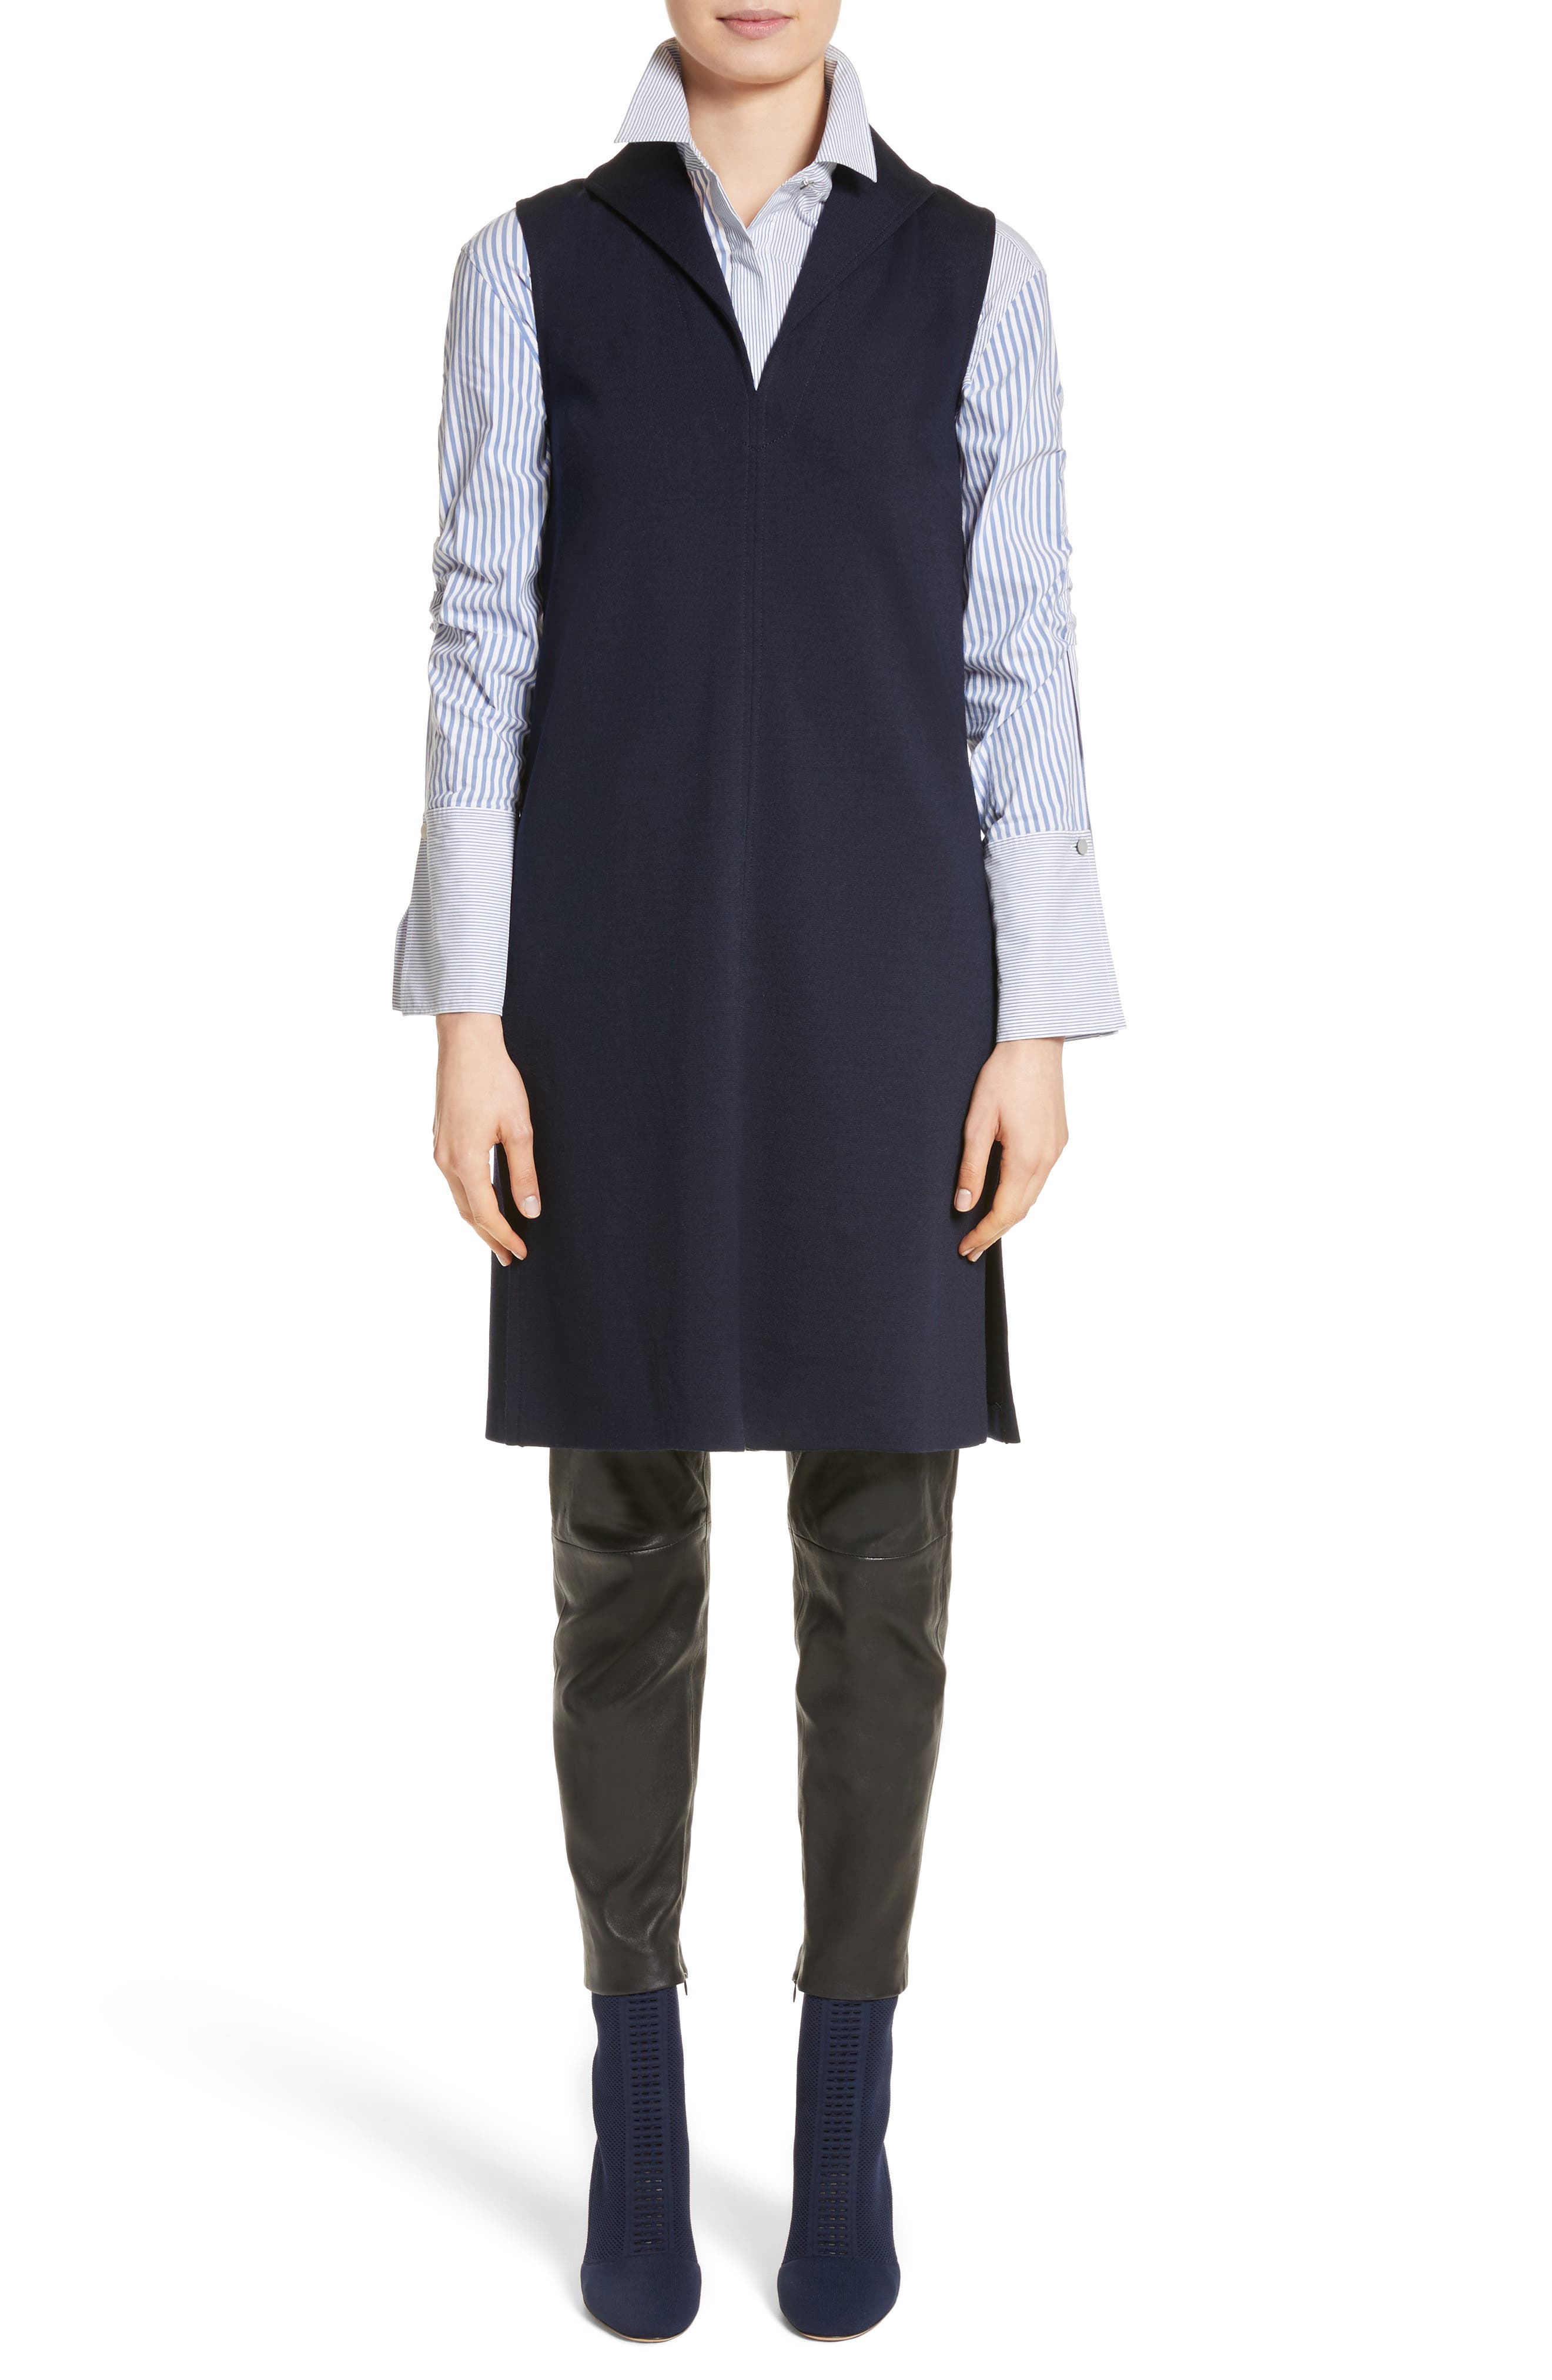 St John Collection Milano Knit Collared Tunic,                             Alternate thumbnail 8, color,                             Navy